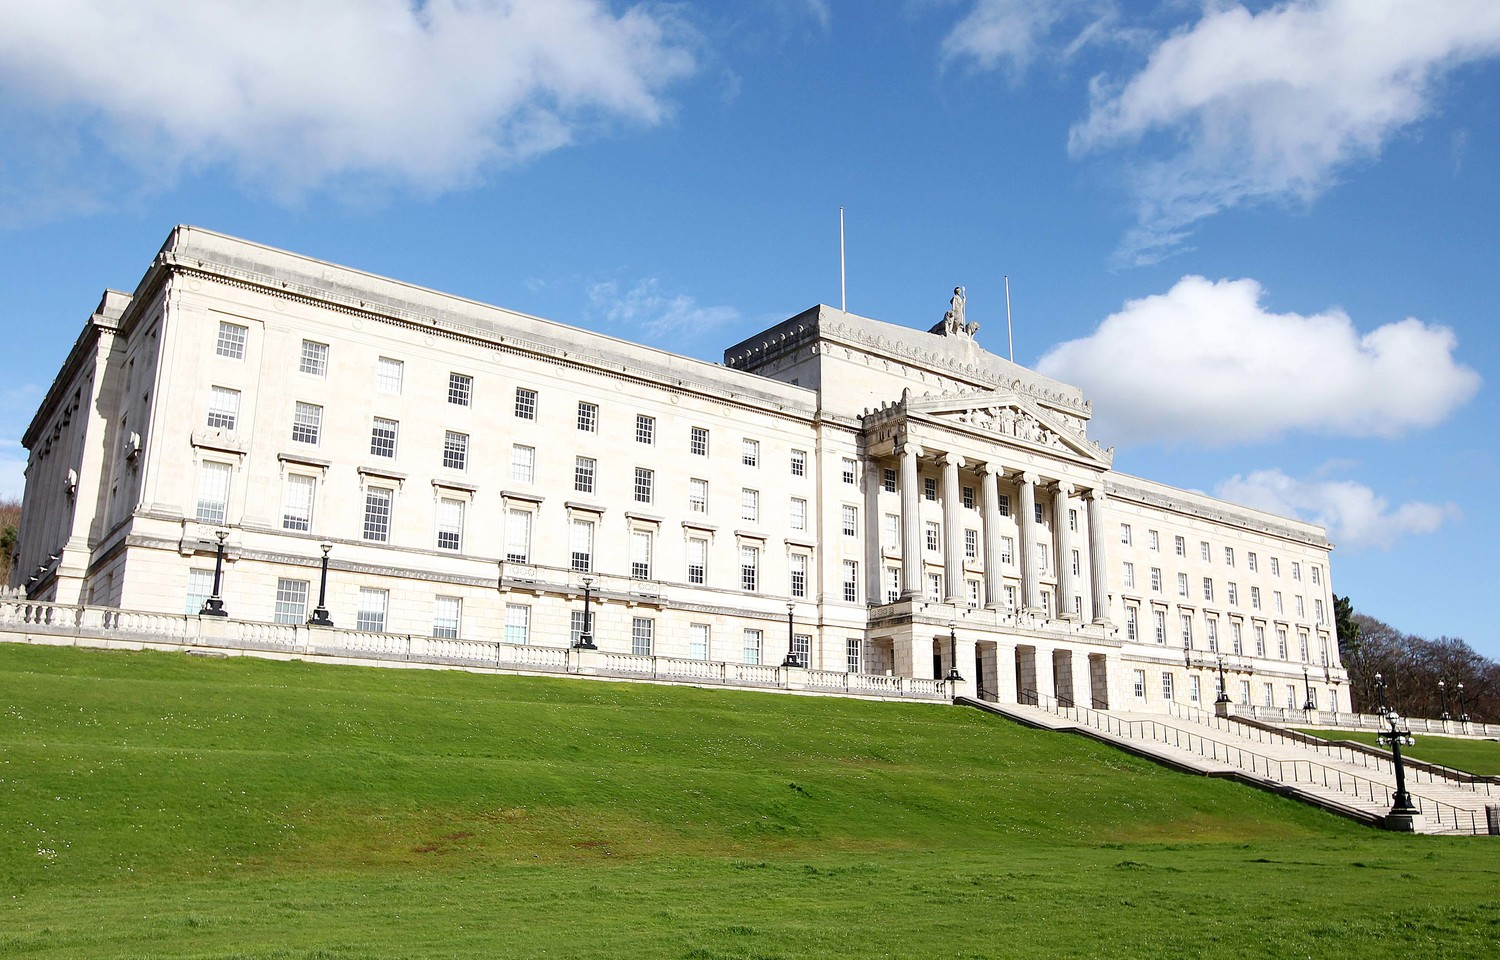 Parliament Buildings, Stormont.